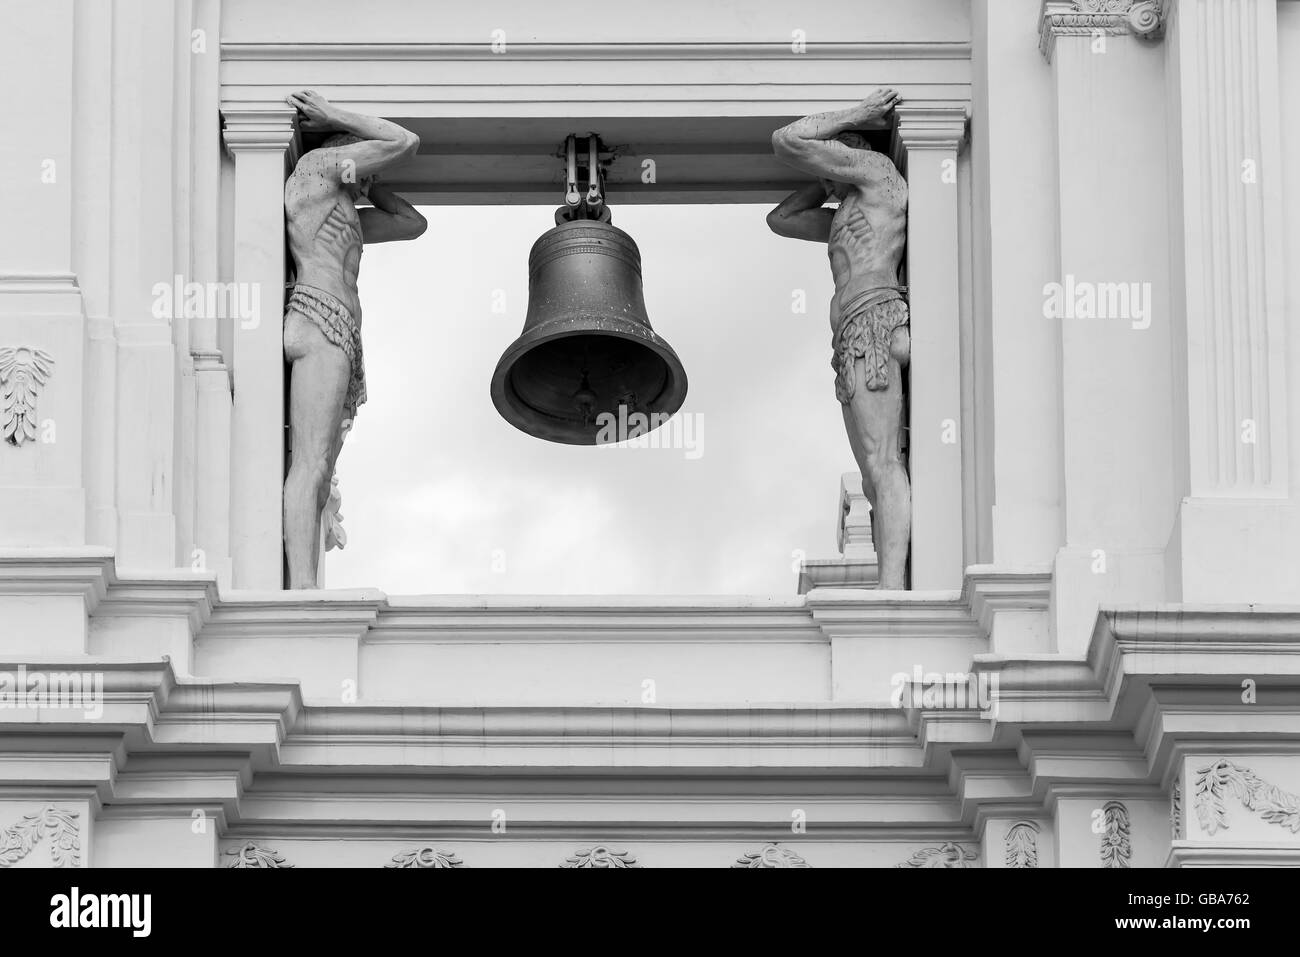 Statues supporting a bell column in the Cathedral of Leon, Nicaragua - Stock Image